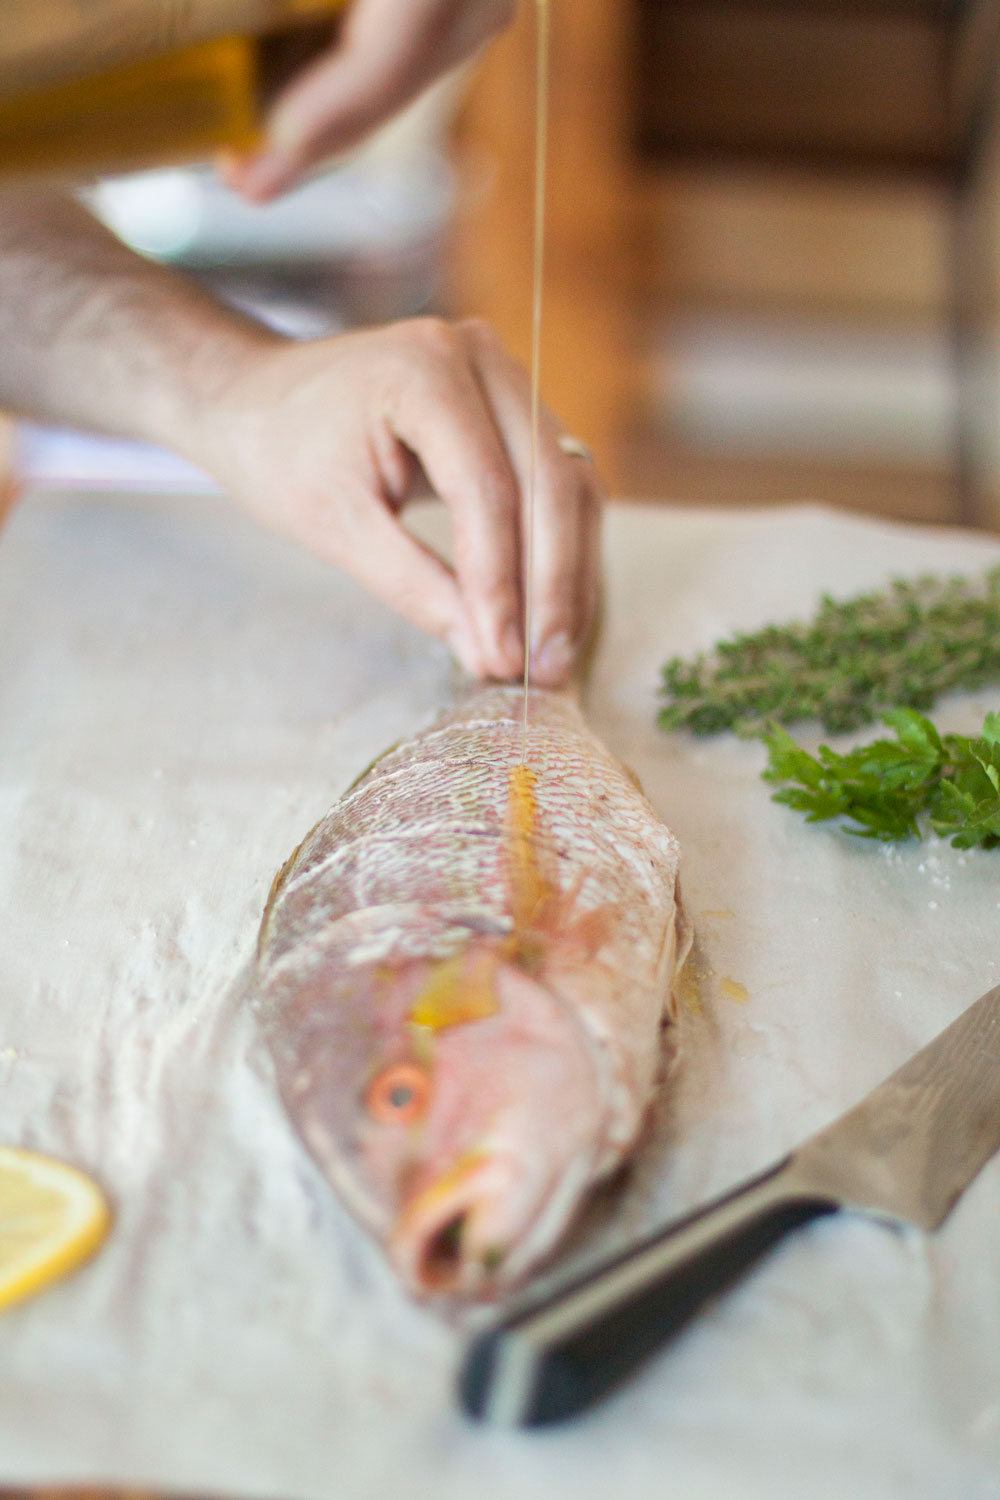 Quick and healthy recipe for Whole Grilled Fish on Bubbles in Bucktown (bubblesinbucktown.com)